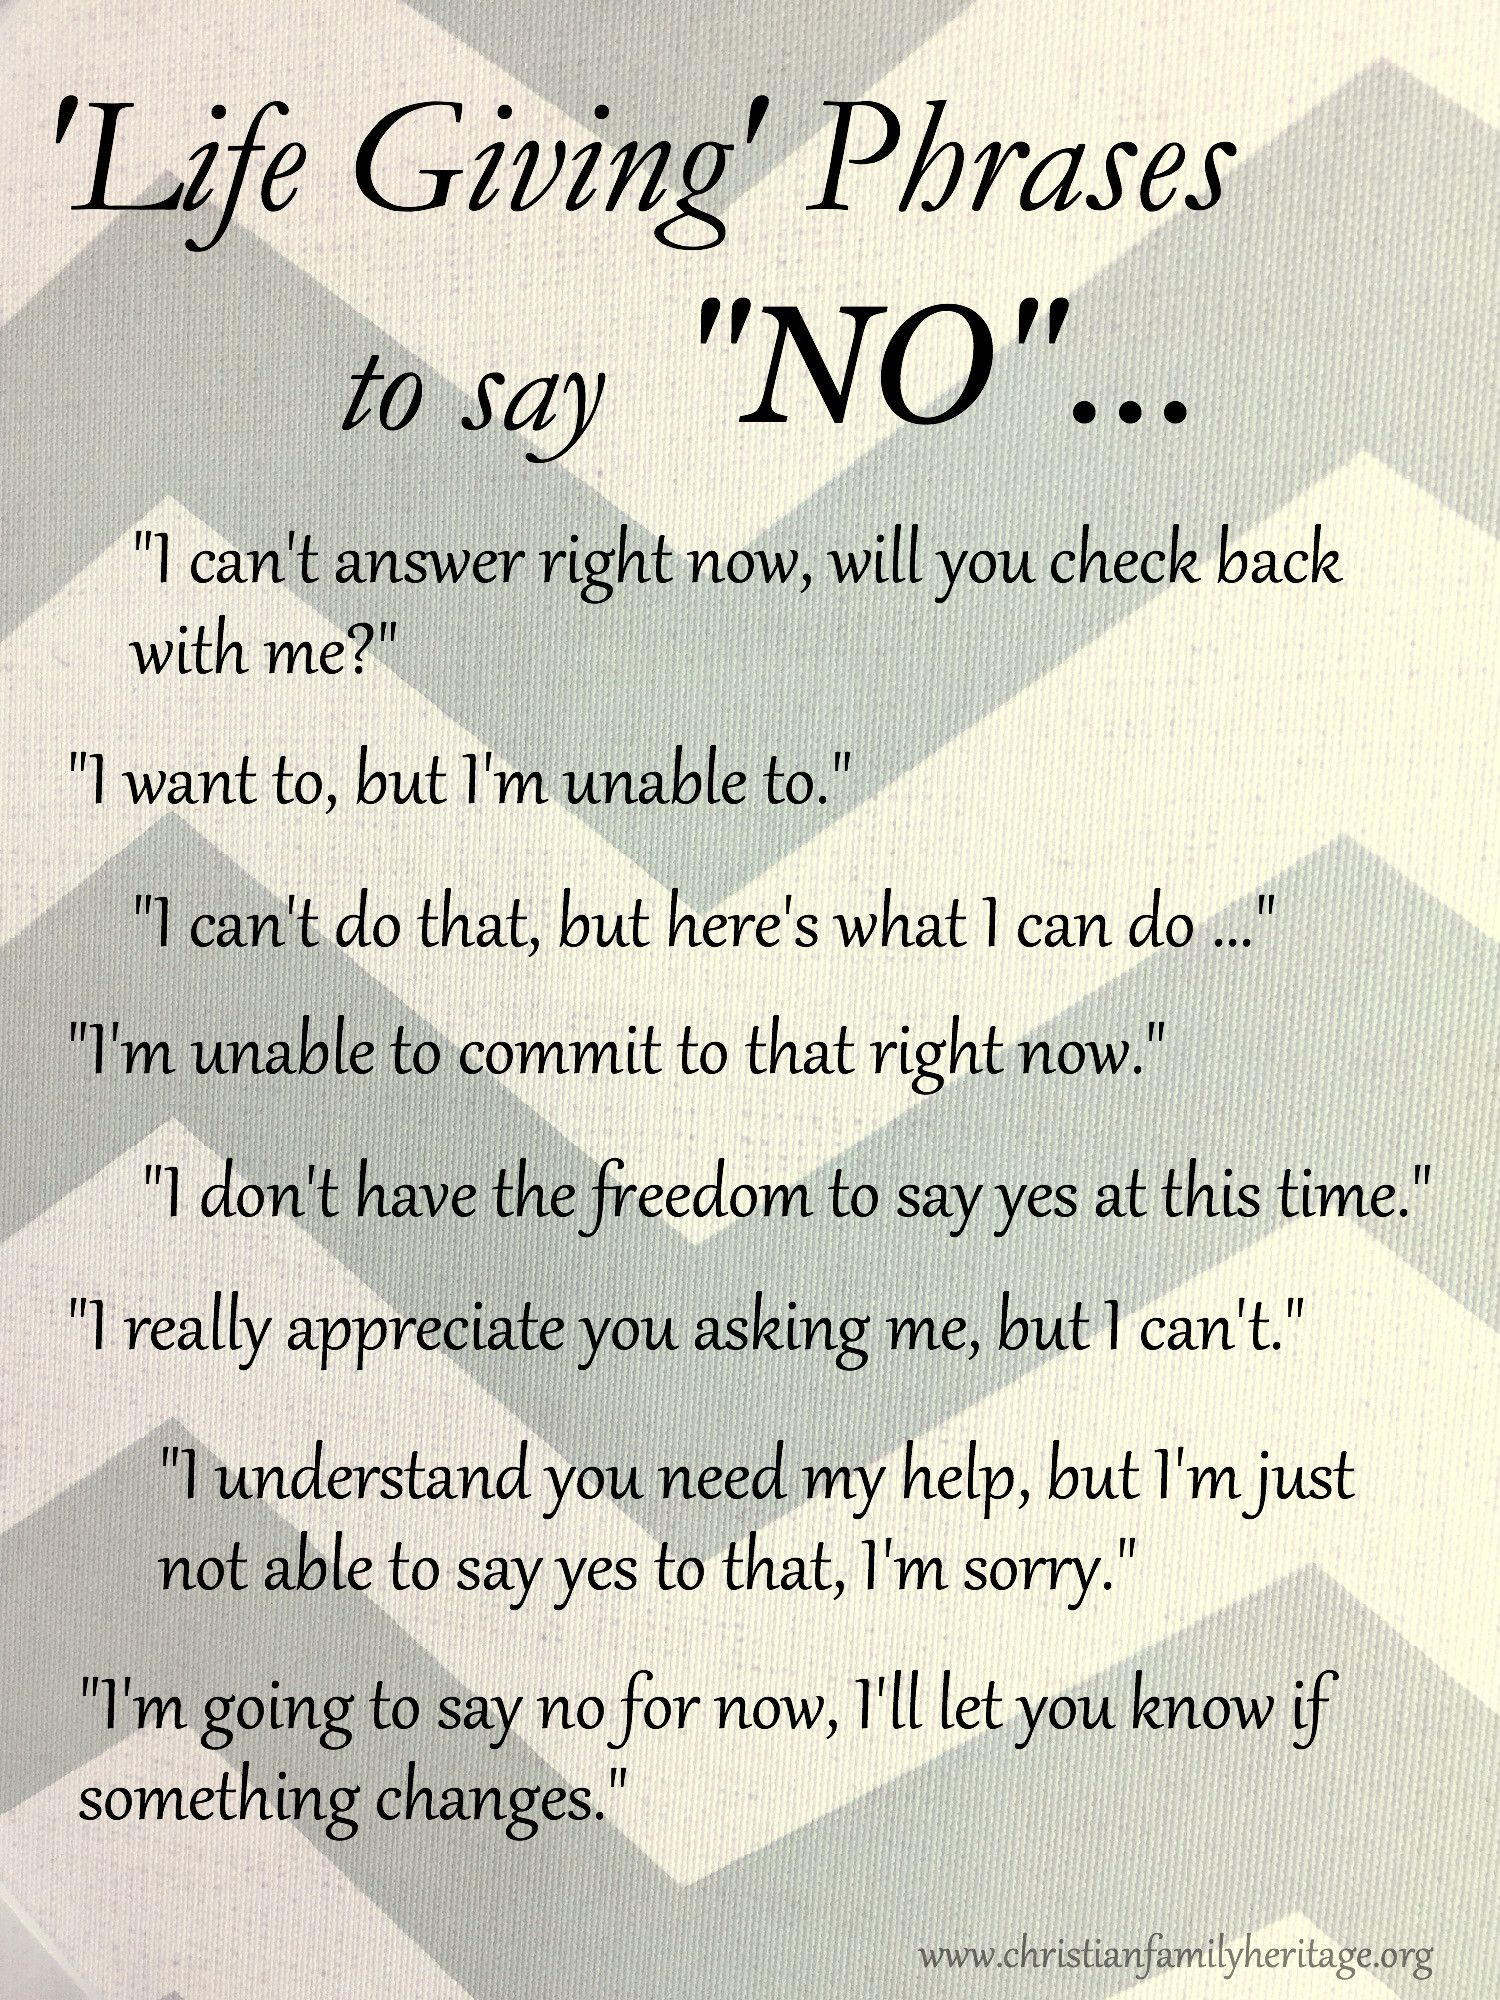 Many Times We Need A Polite And Positive Way To Say No